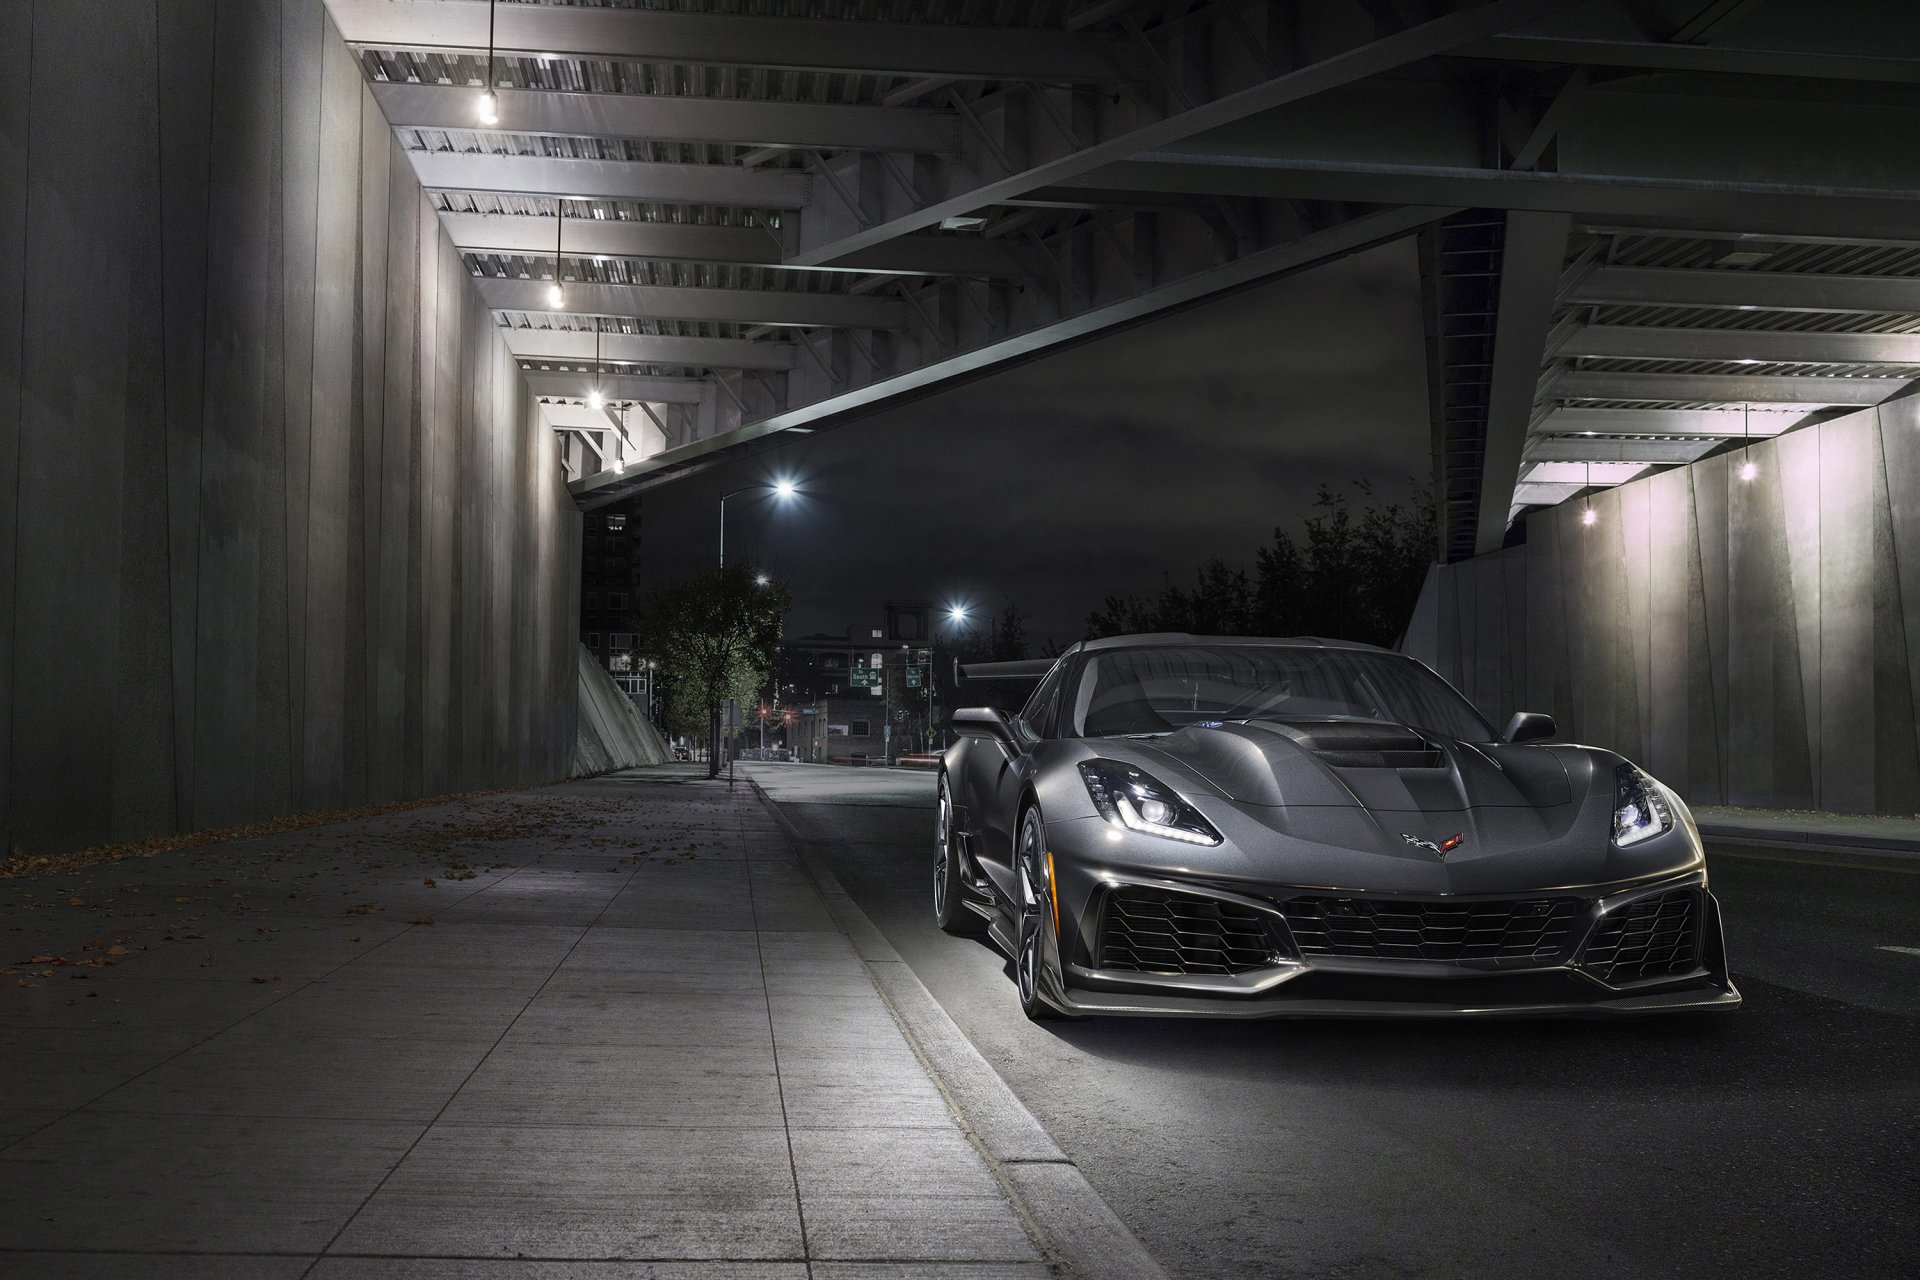 Wallpapers Of Car Corvette Convertible With Black Lights 2018 Chevrolet Corvette Zr1 Full Hd Wallpaper And